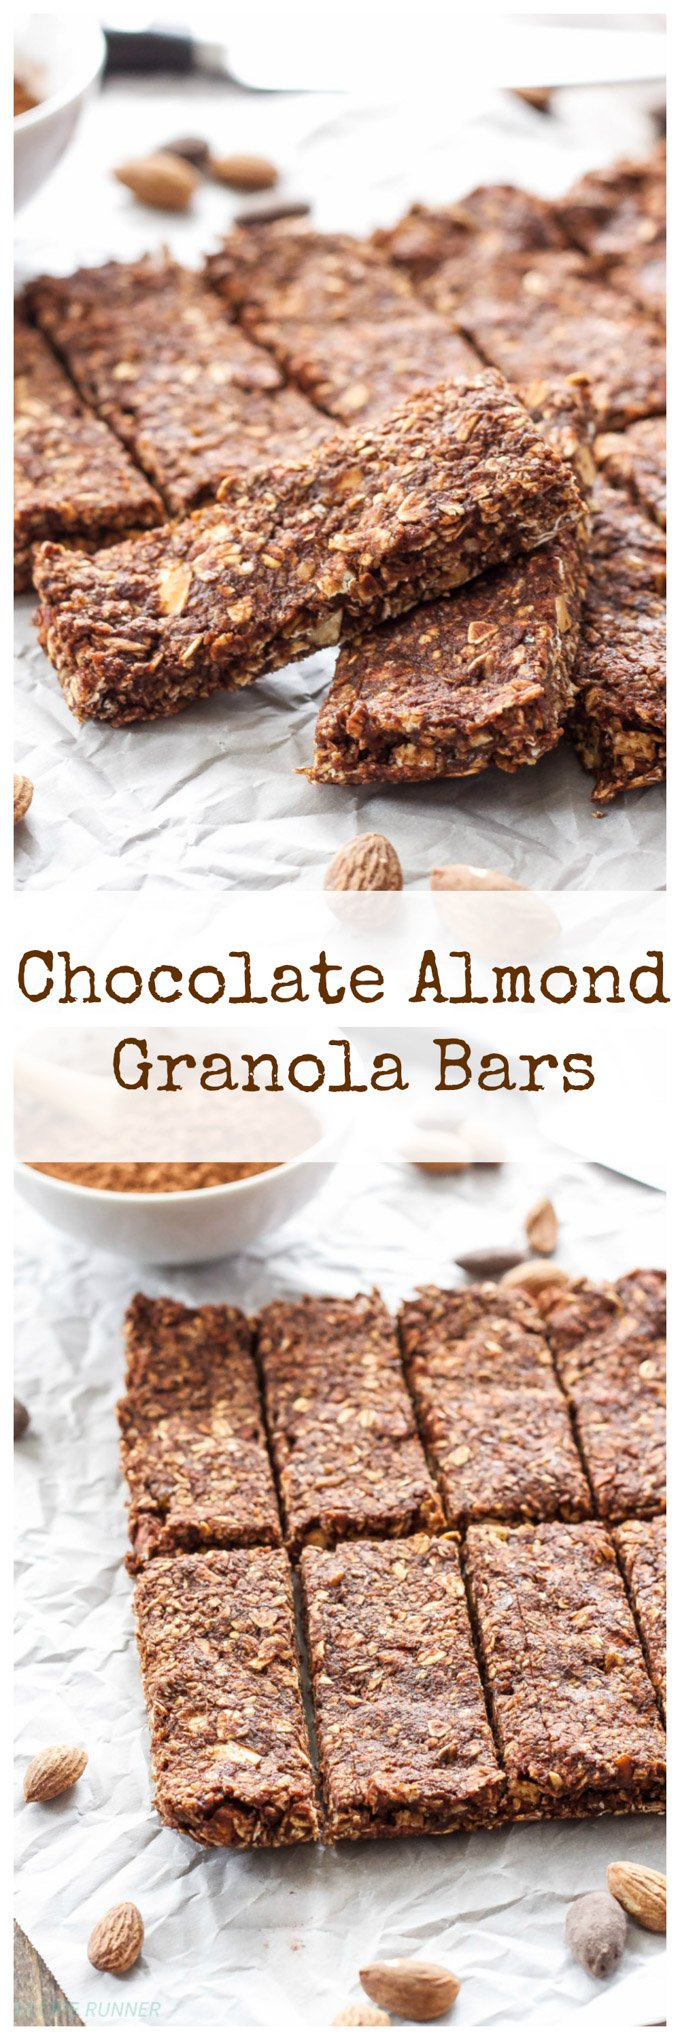 Chocolate Almond Granola Bars | Easy to make, no bake, healthy granola bars! #ad